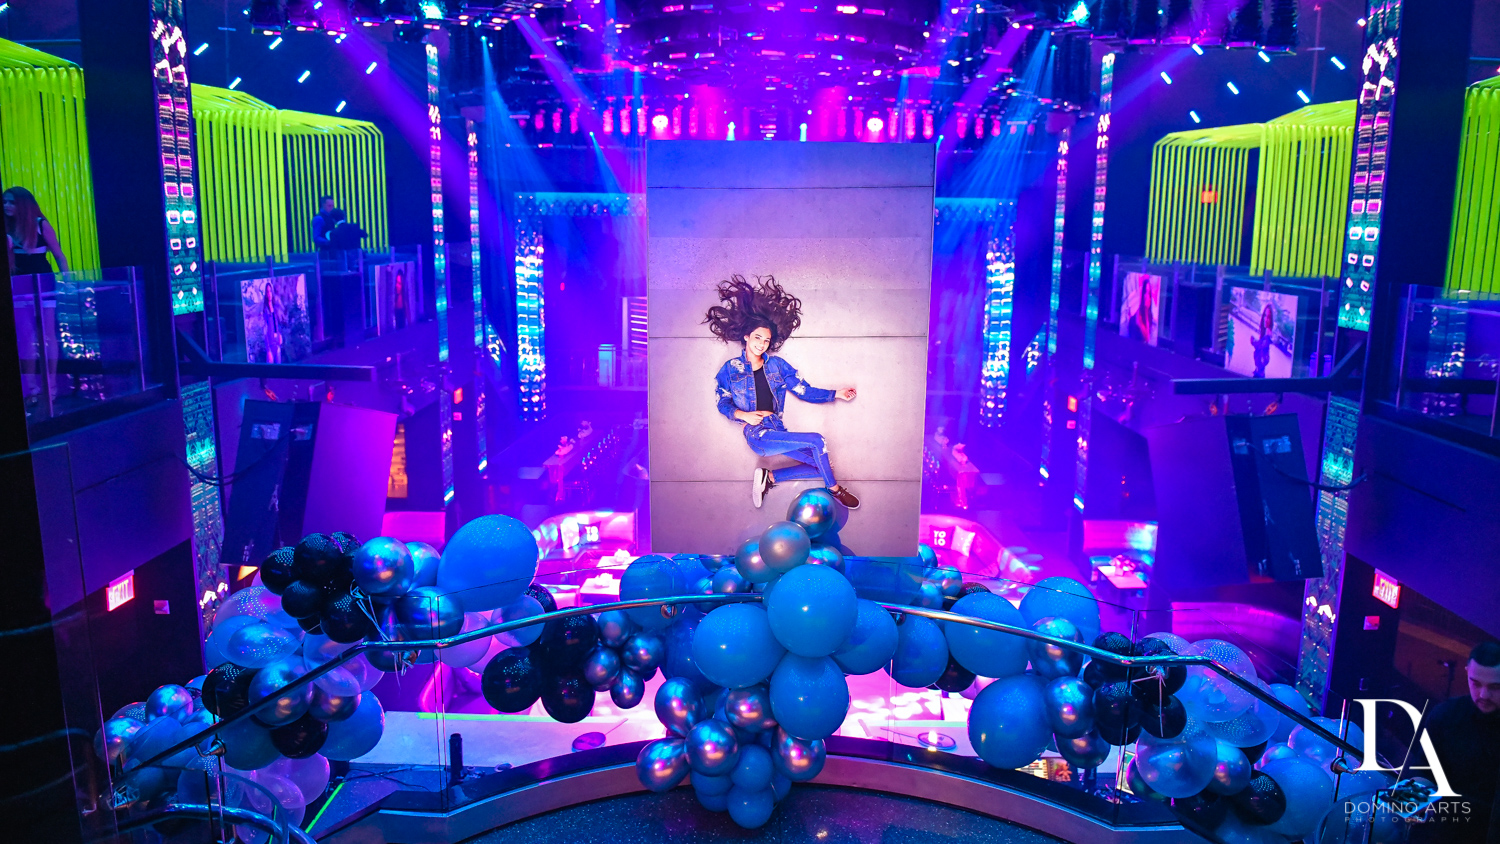 Amazing decor at Nightclub Bat Mitzvah at LIV in Fontainebleau Miami by Domino Arts Photography